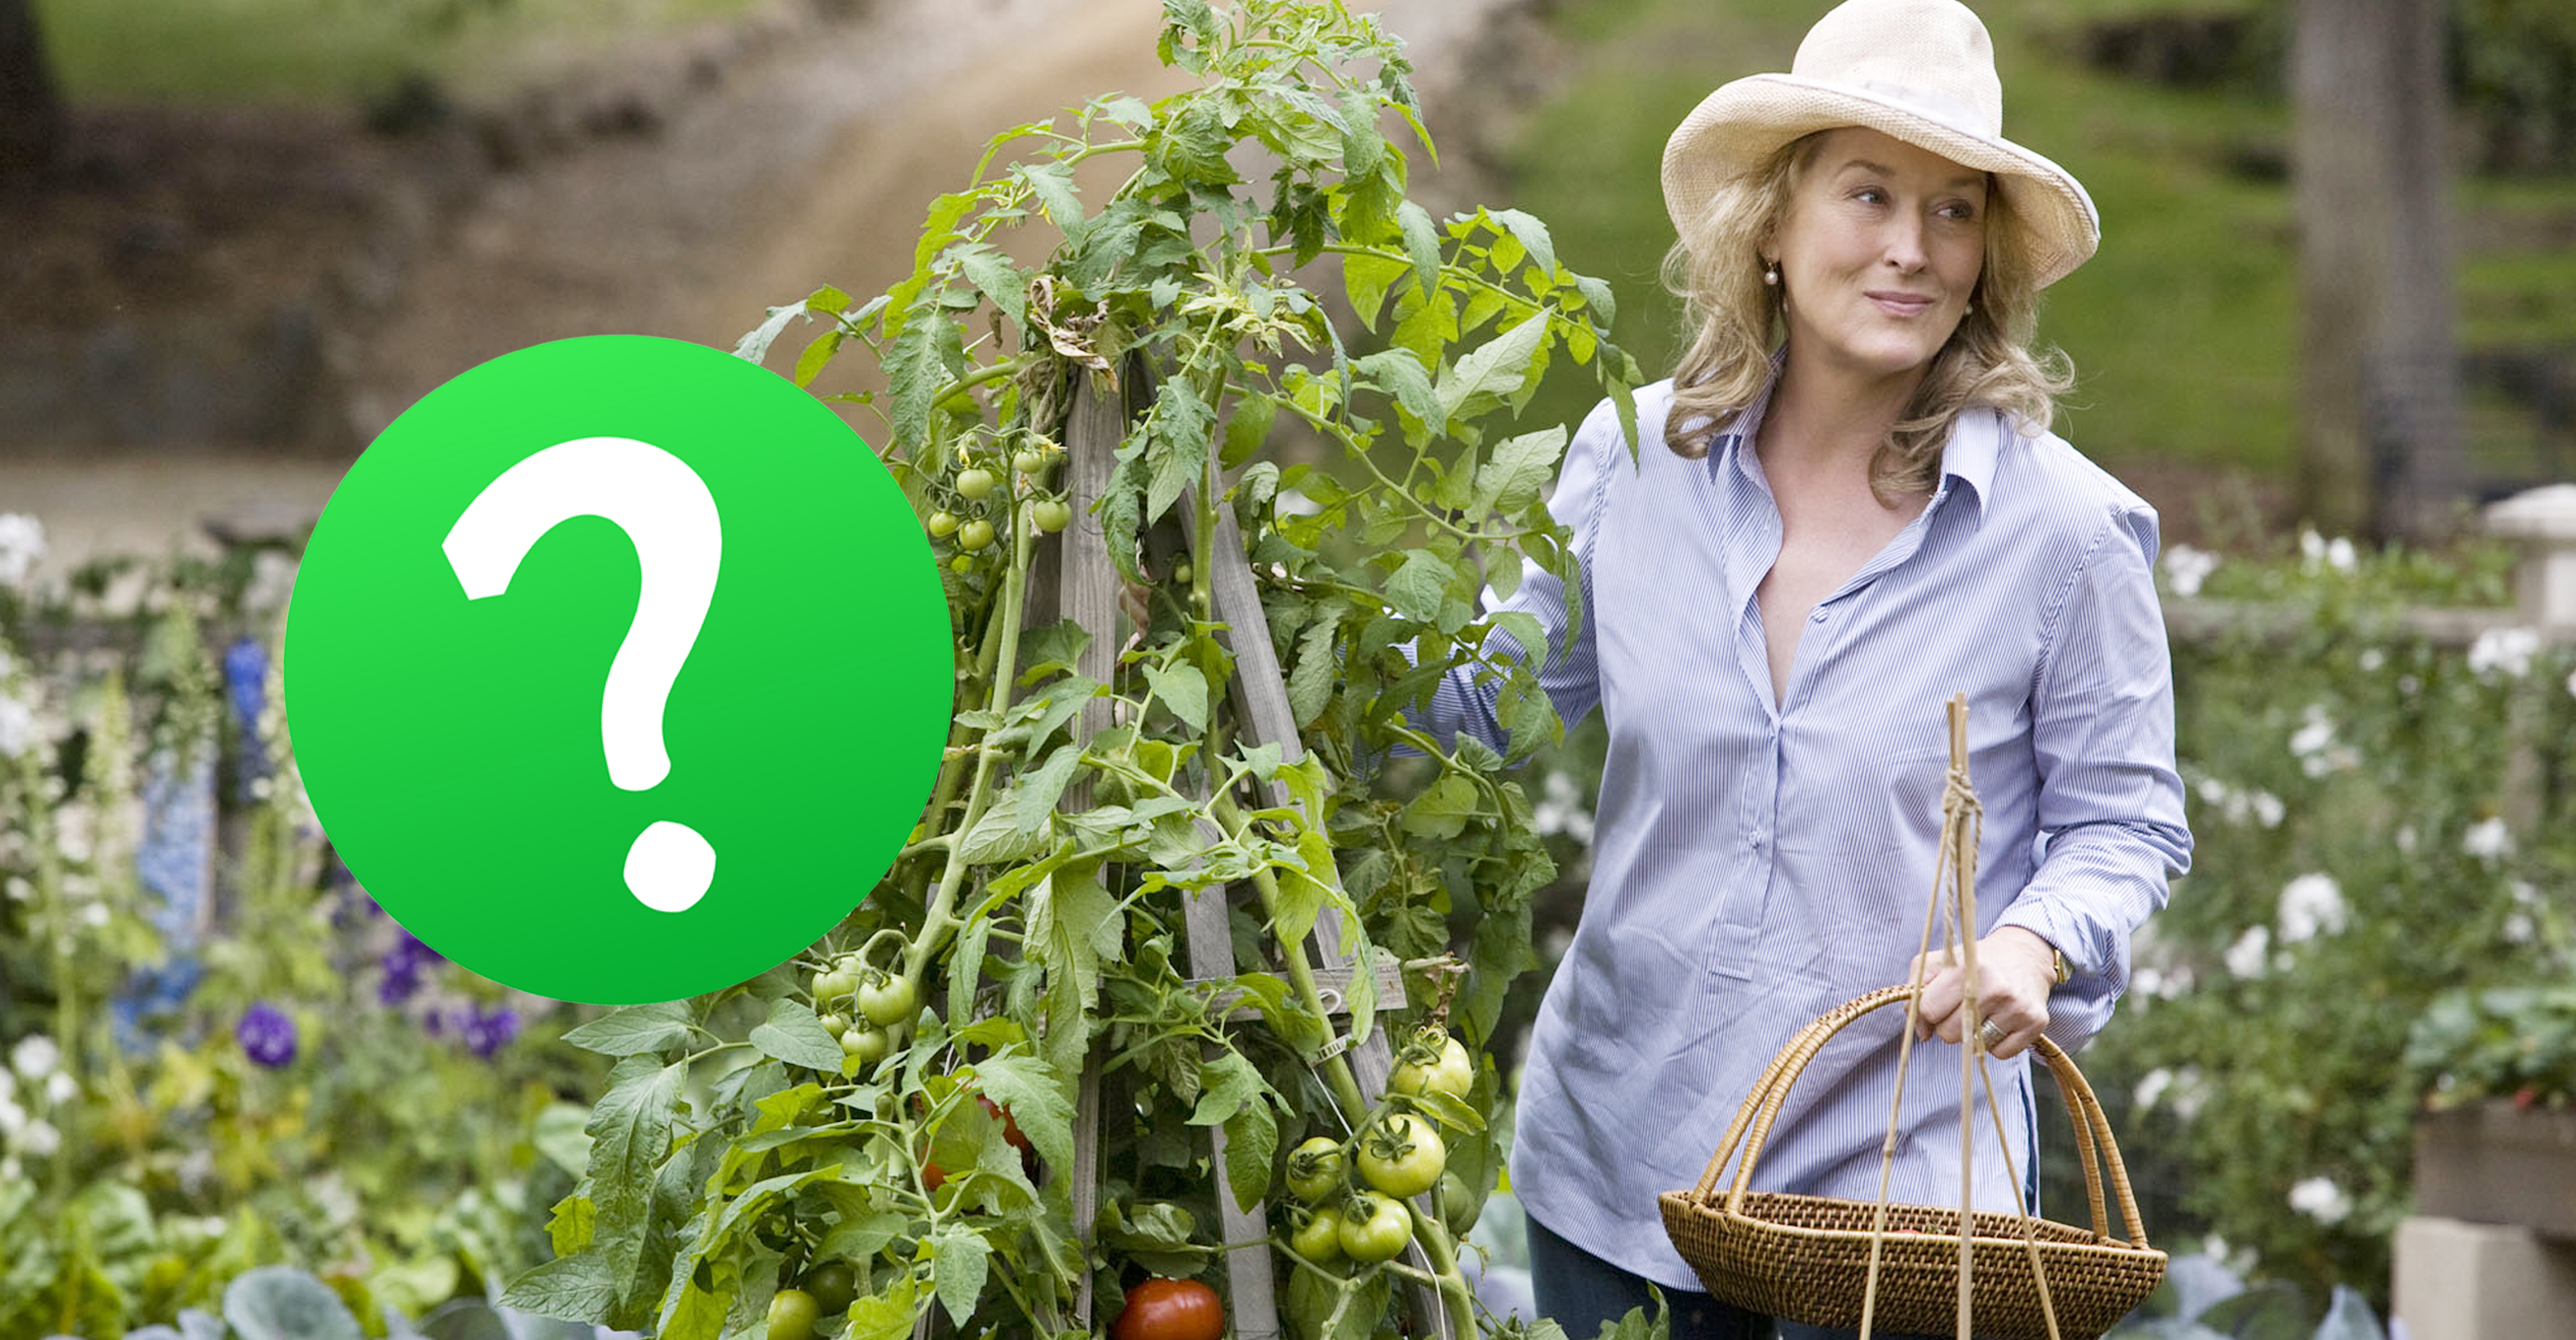 Quiz-No-Farmer-Will-Be-Able-To-Ace-This-Advanced-Business-Quiz-Can-You